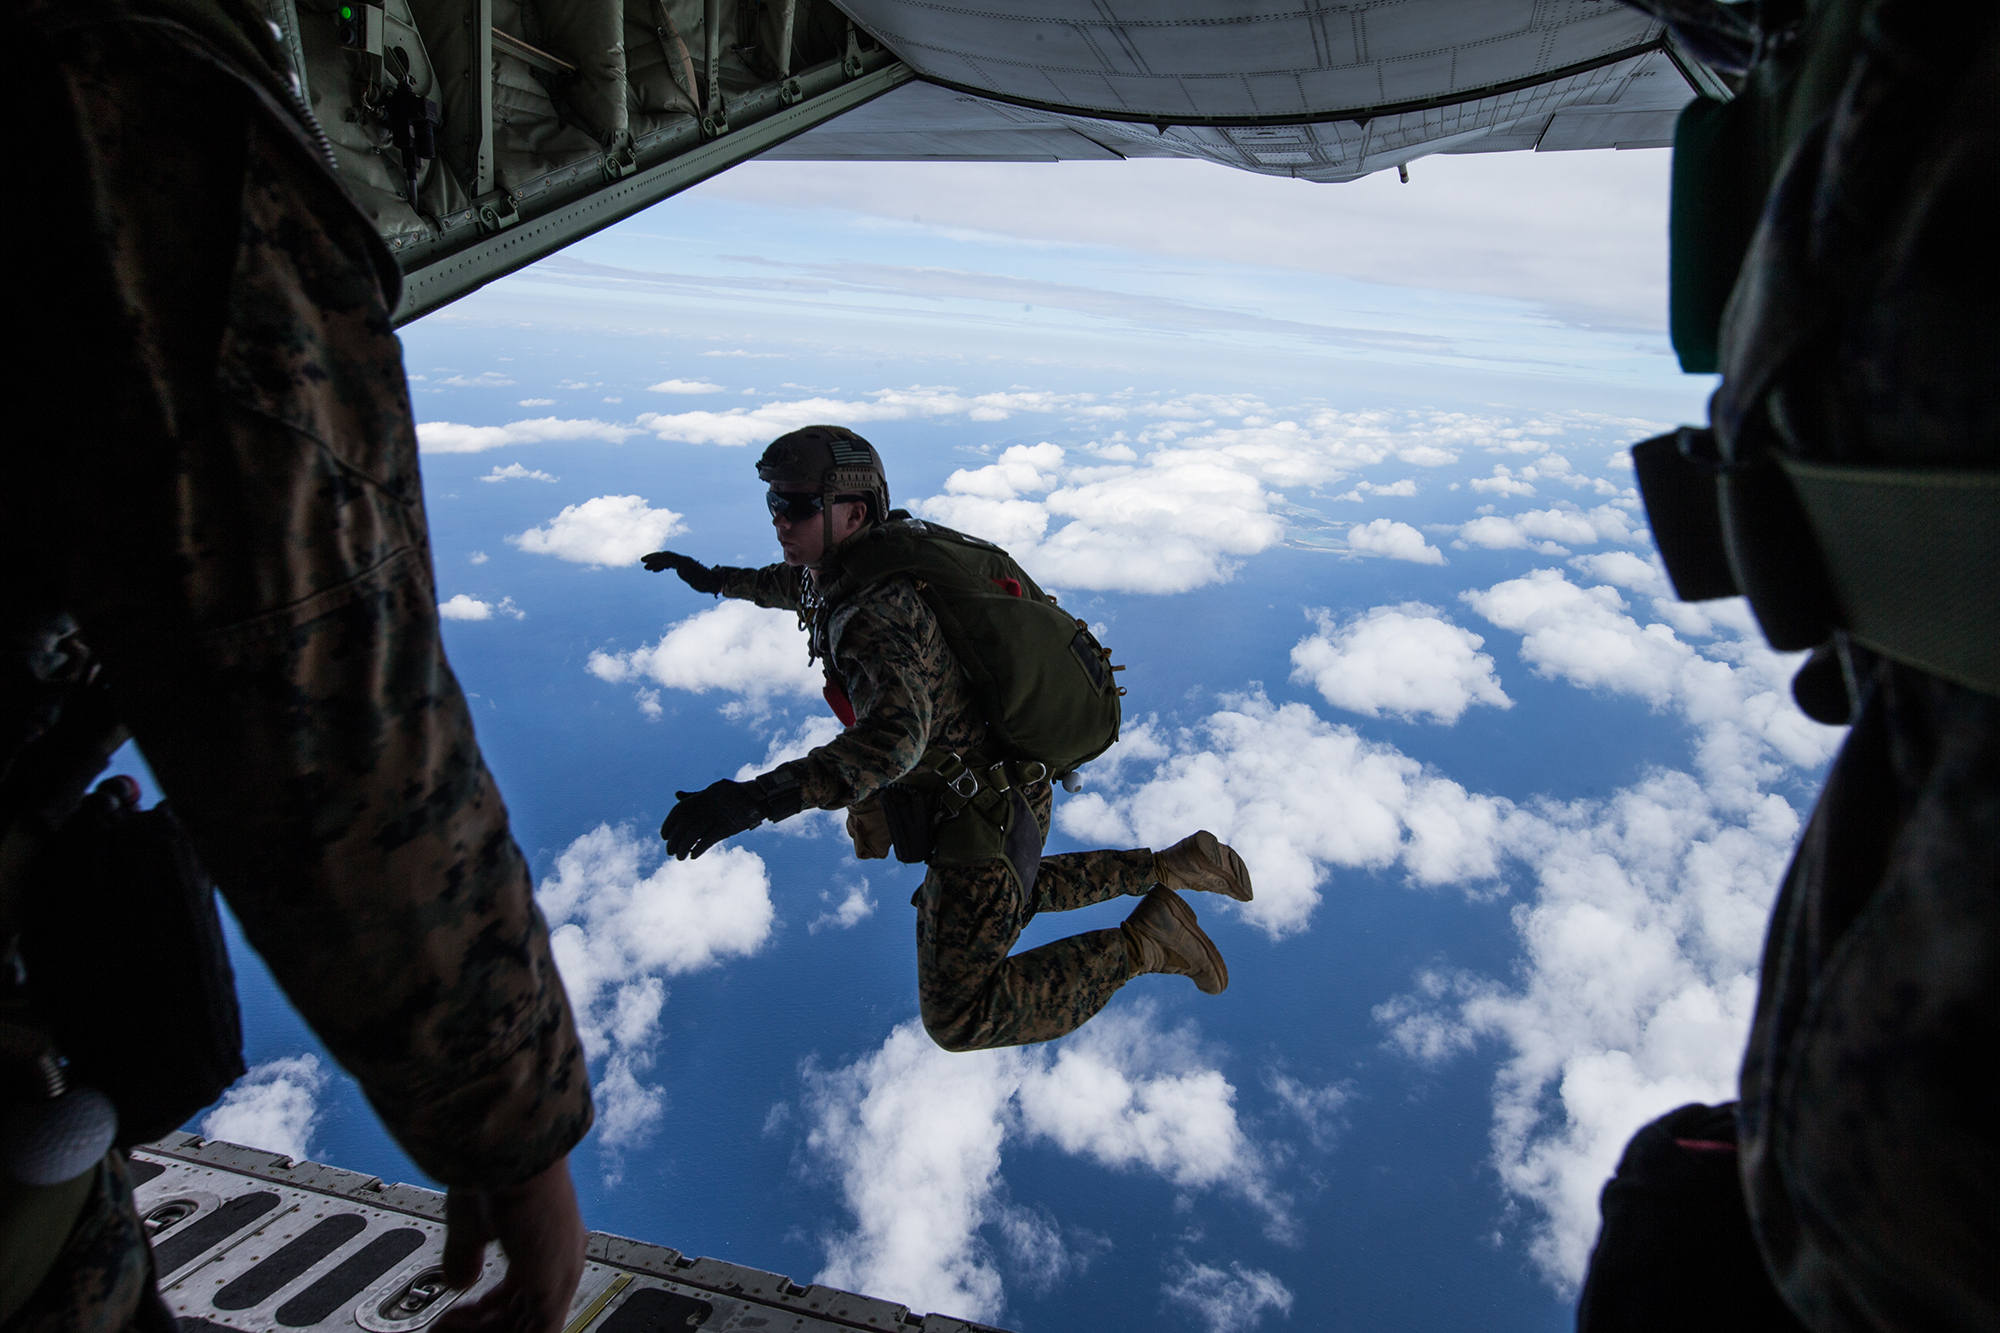 Marines conduct parachute operations by jumping out of a KC-130 Hercules on Ie Shima, Okinawa, Japan, Oct. 28-30, 2019. (Cpl. Josue Marquez/Marine Corps)